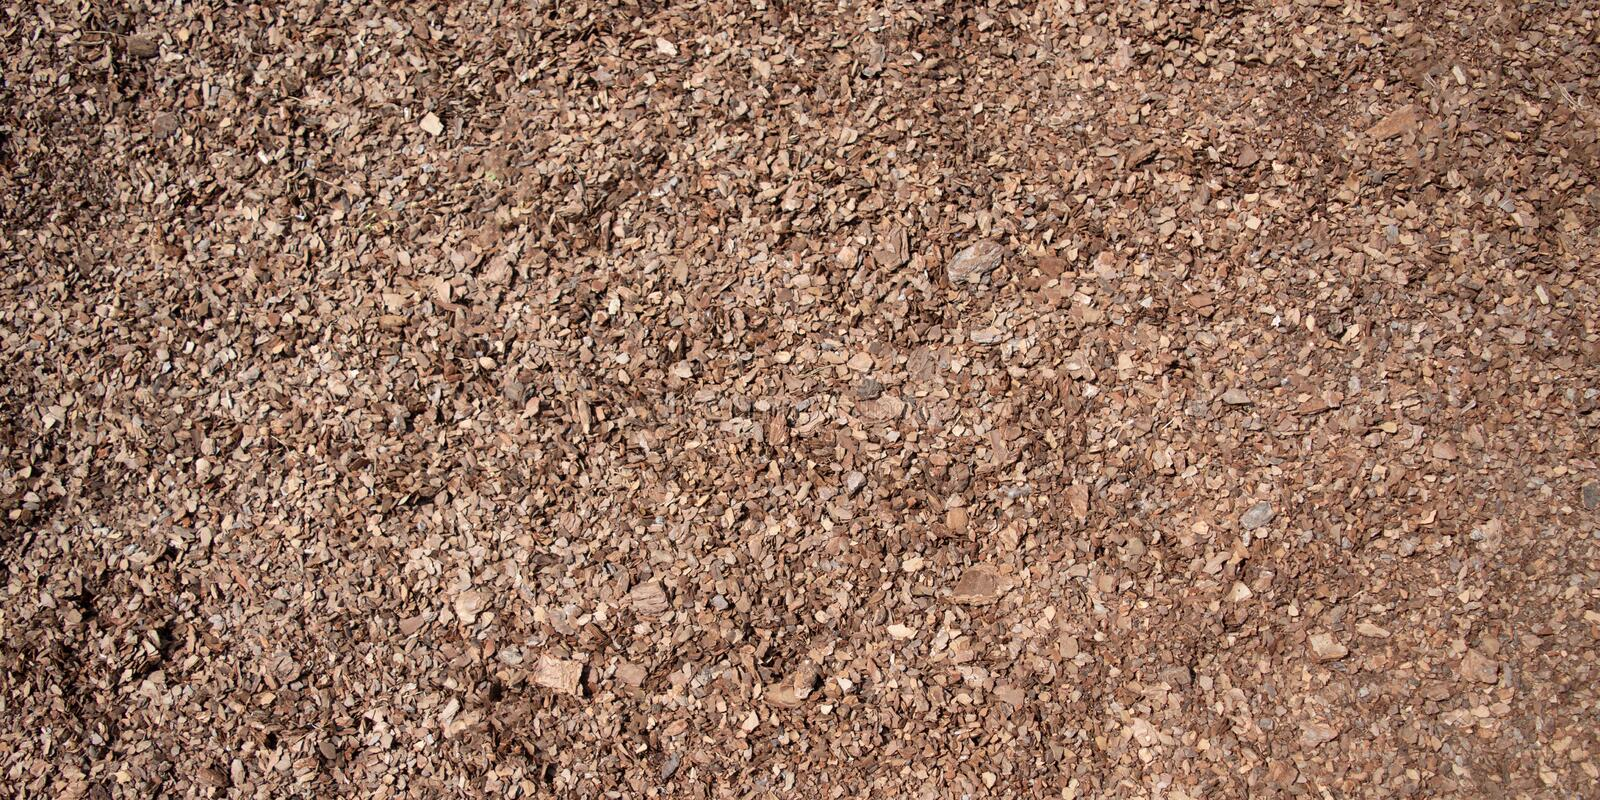 Background of seamless tiling wood chips. Used for safety in toddlers playgrounds stock images